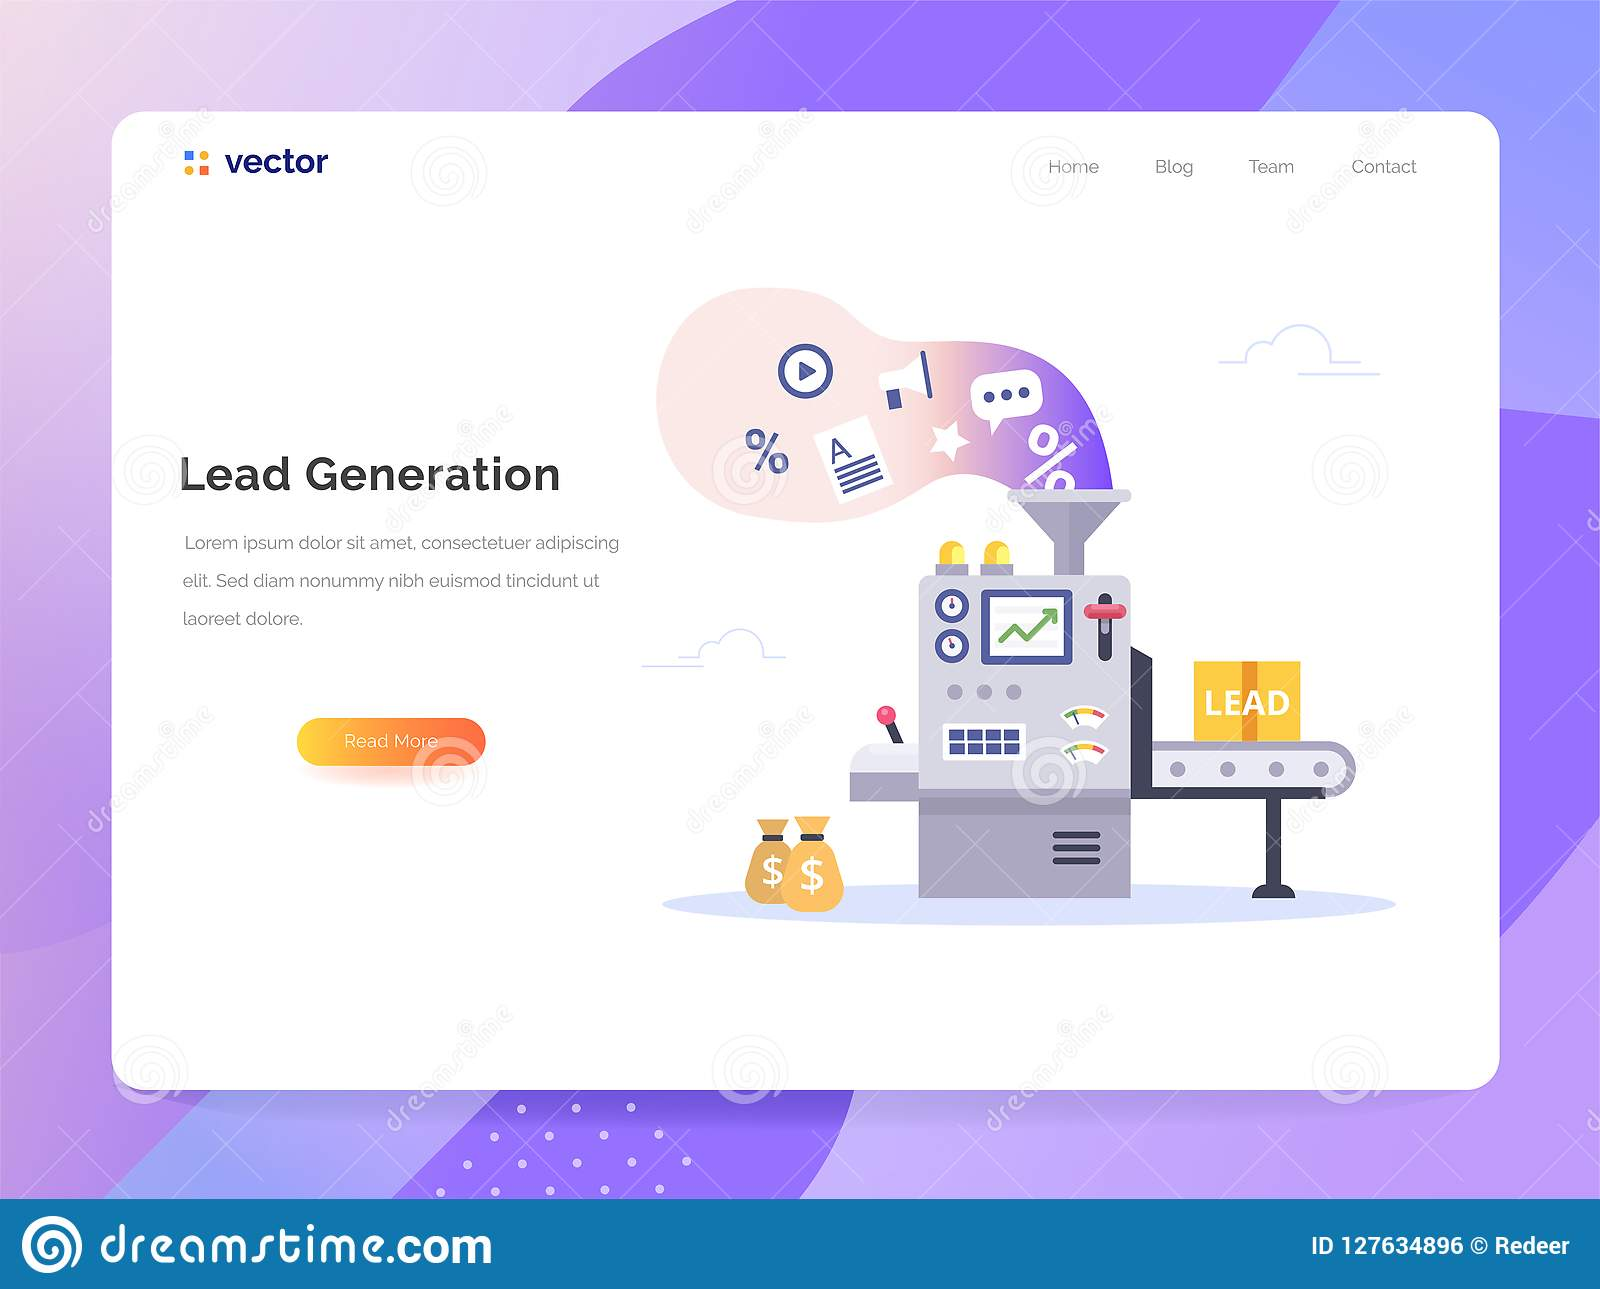 Managing sales vector concept in flat style. Conveyor generate leads. Marketing technology vector illustration.